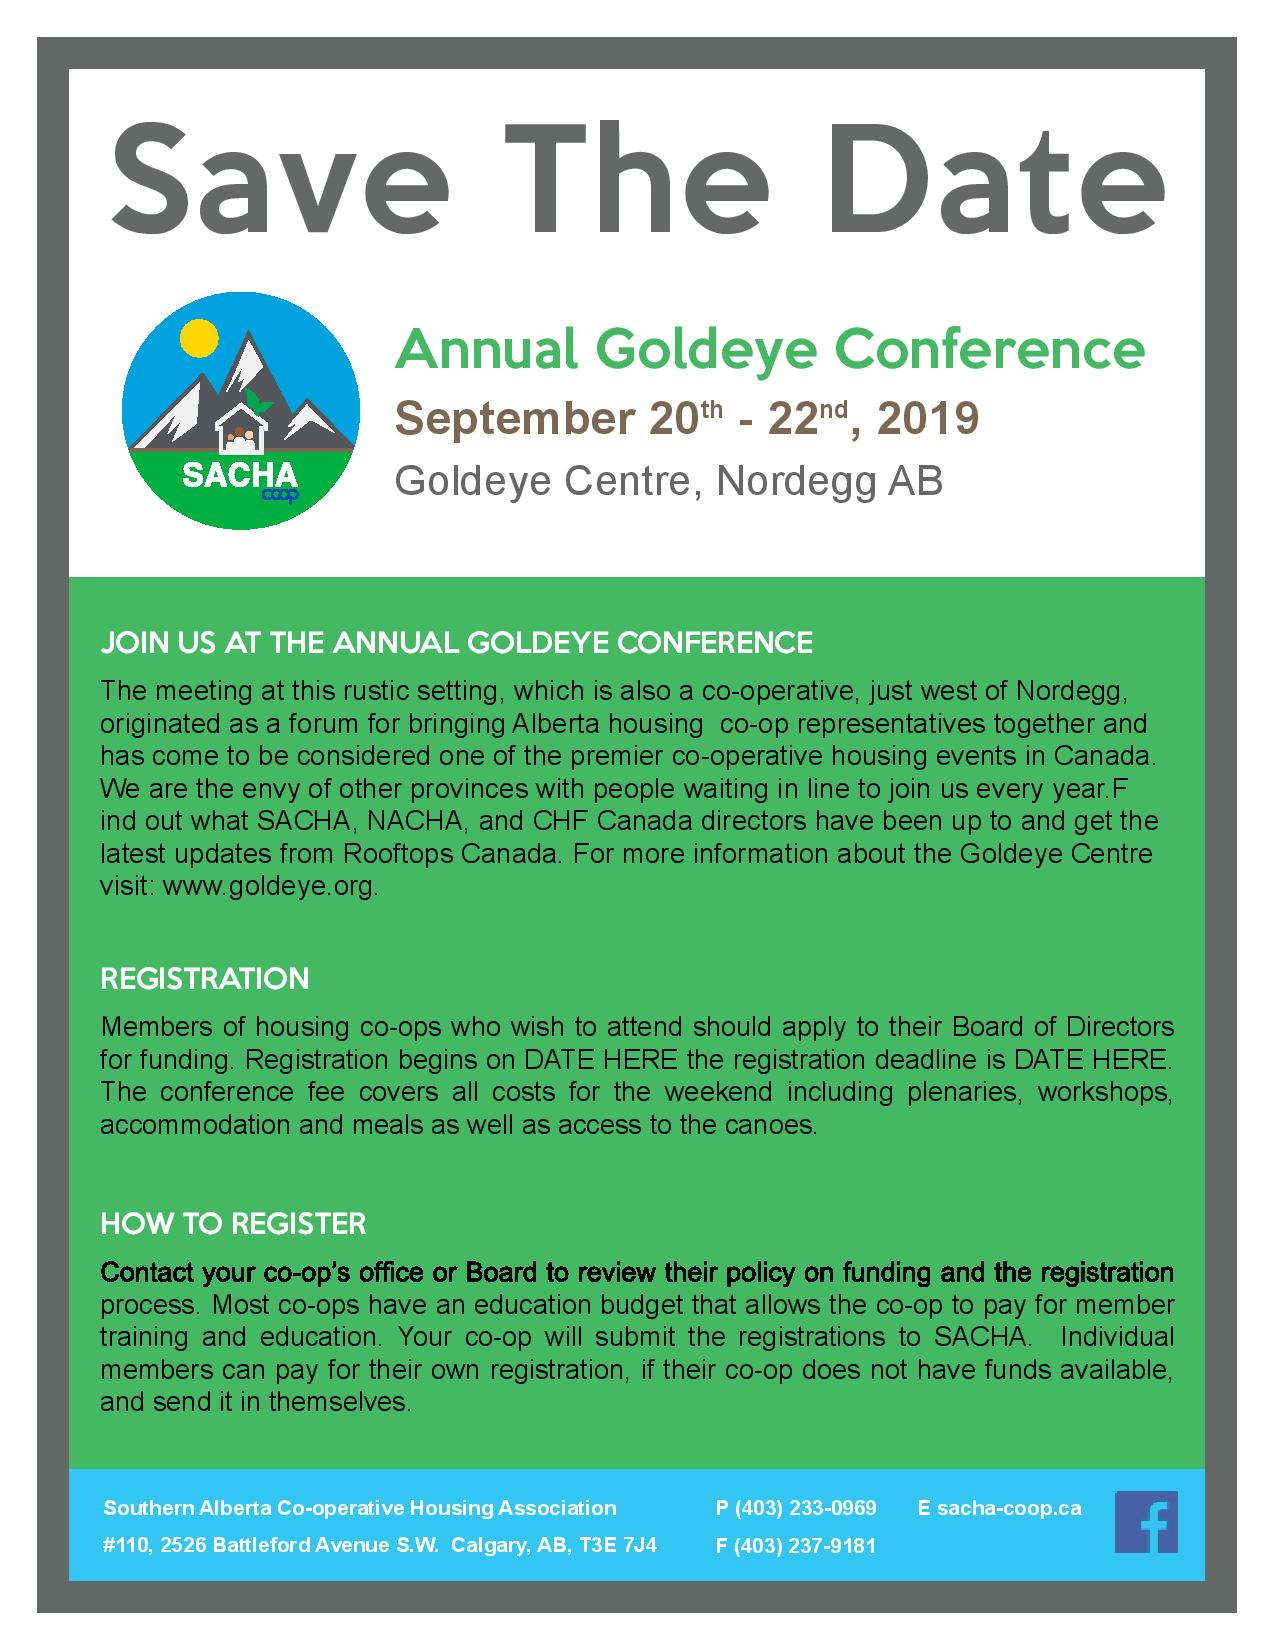 Goldeye_Save The Date_2019-page-001.jpg